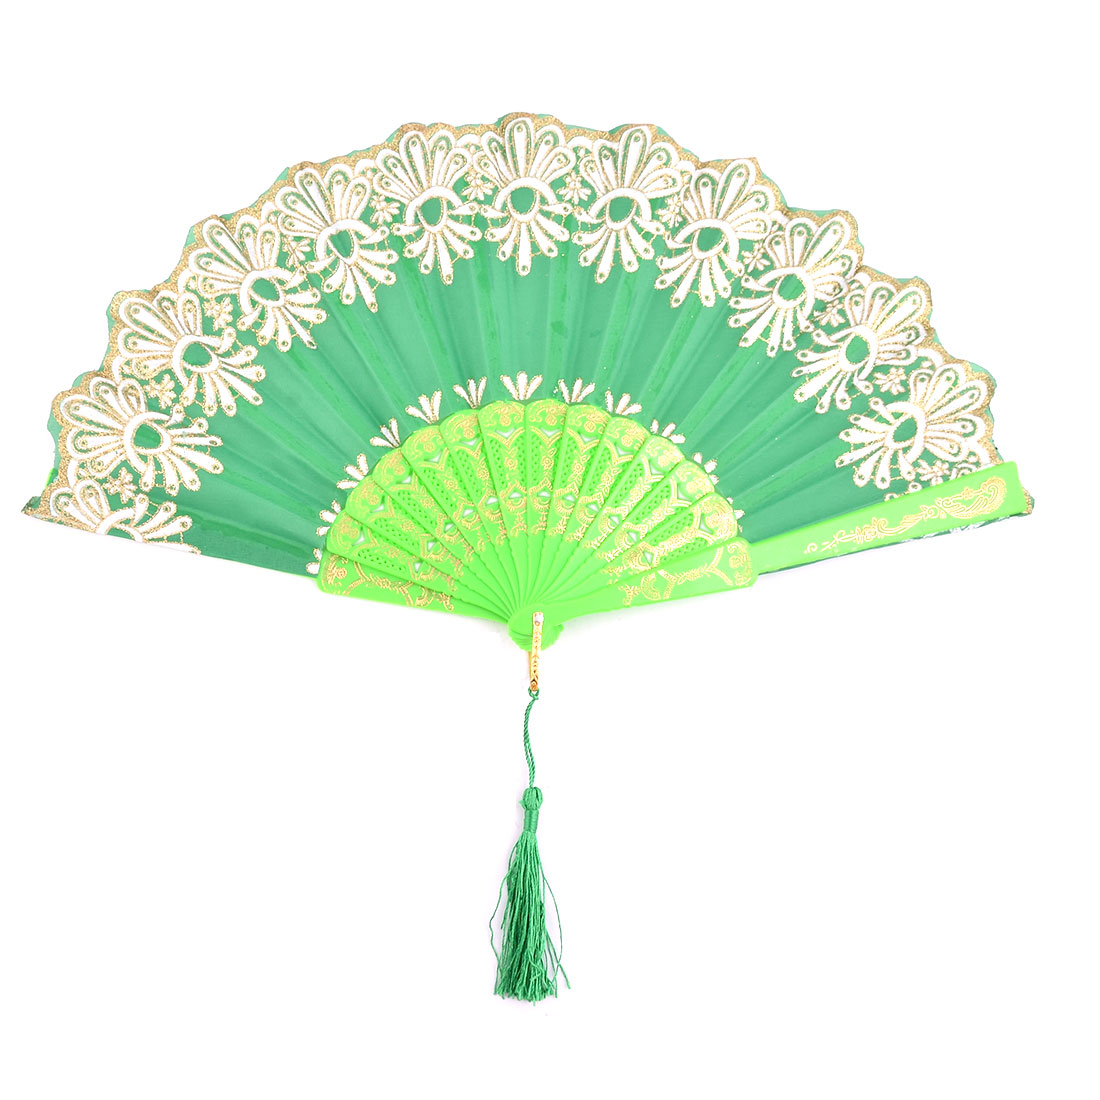 Lady Plastic Frame Floral Print Folding Dancing Cooling Hand Fan Green 23.5cm Length